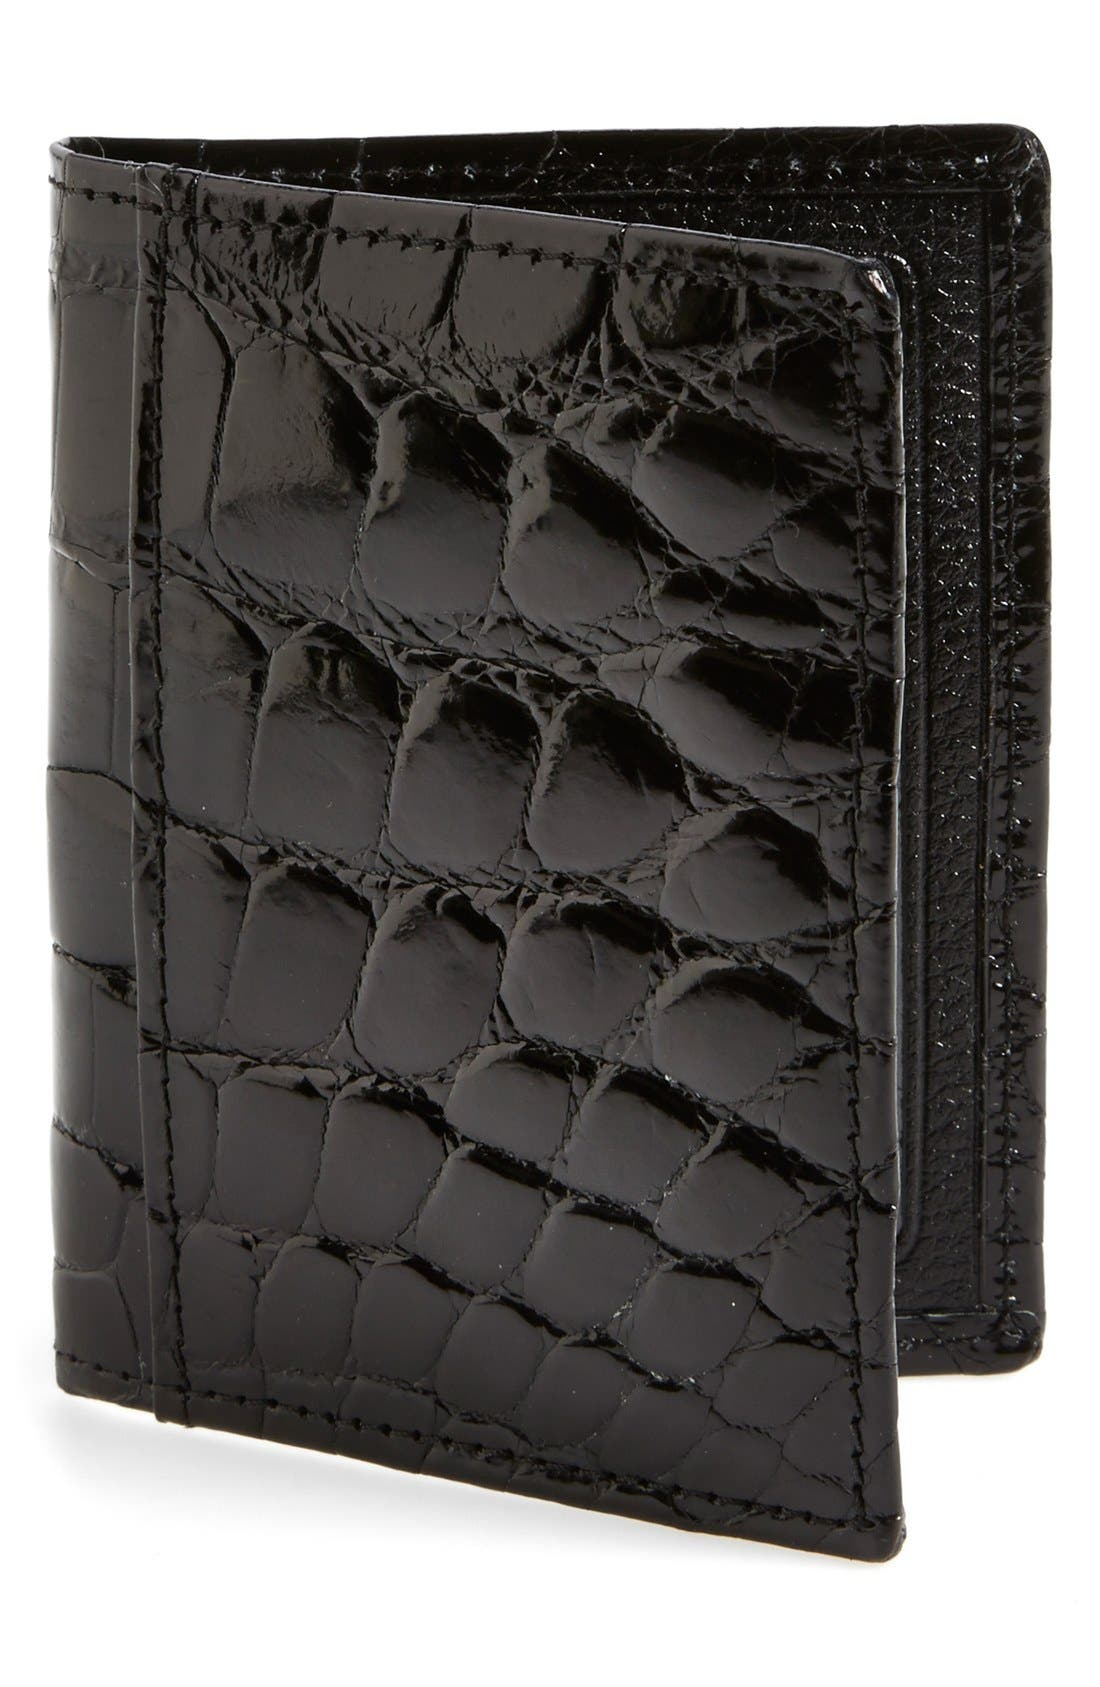 Martin Dingman 'Joseph' Genuine American Alligator Leather ID Wallet